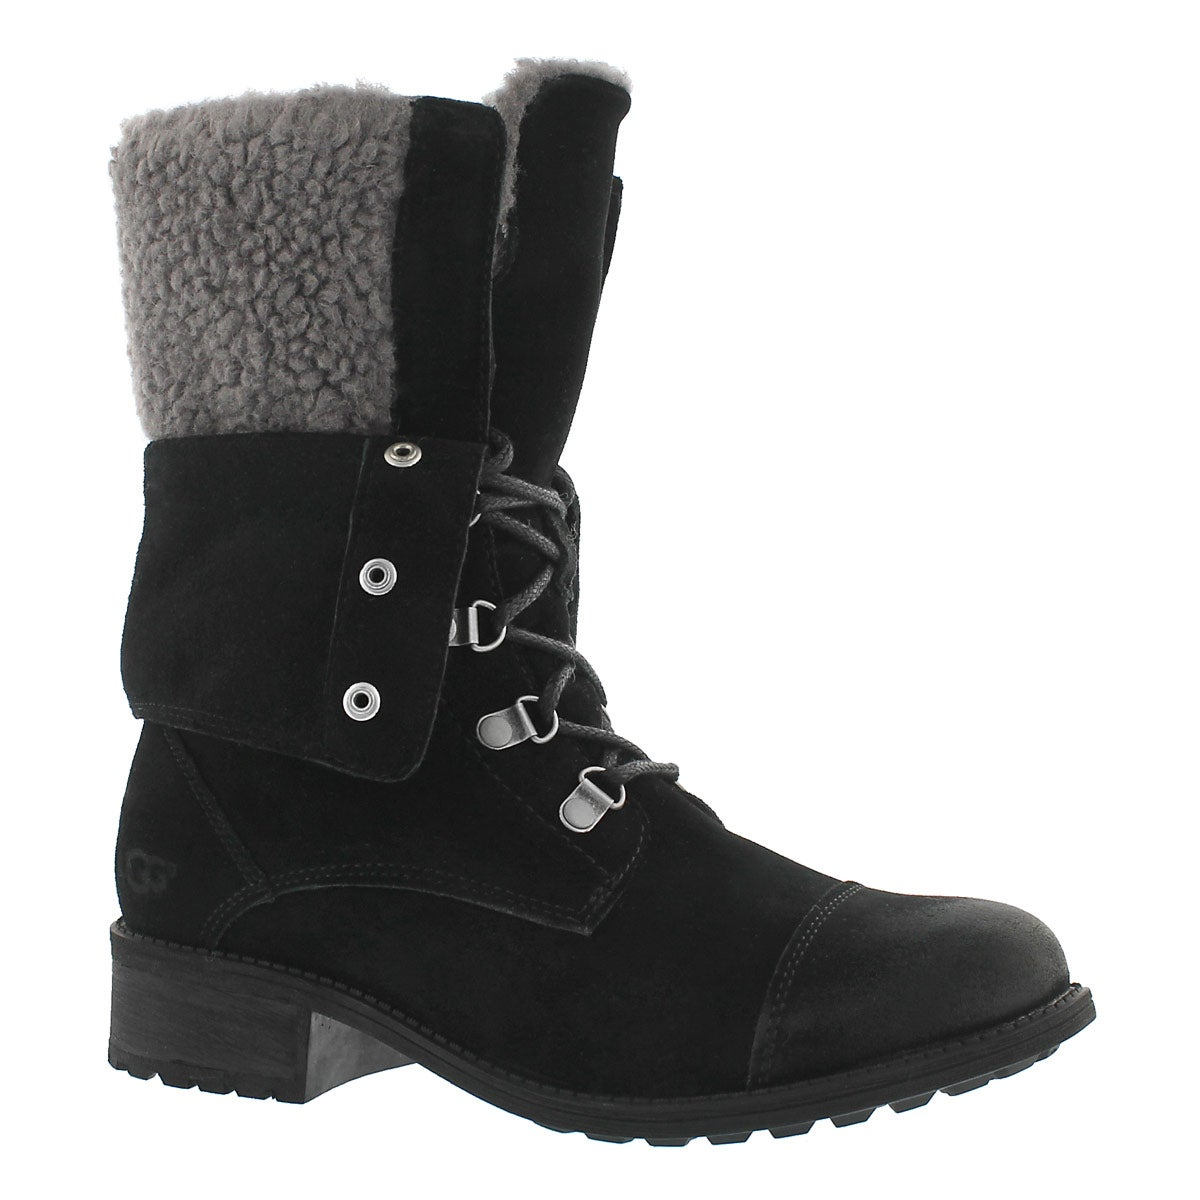 Women's GRADIN black casual ankle boots